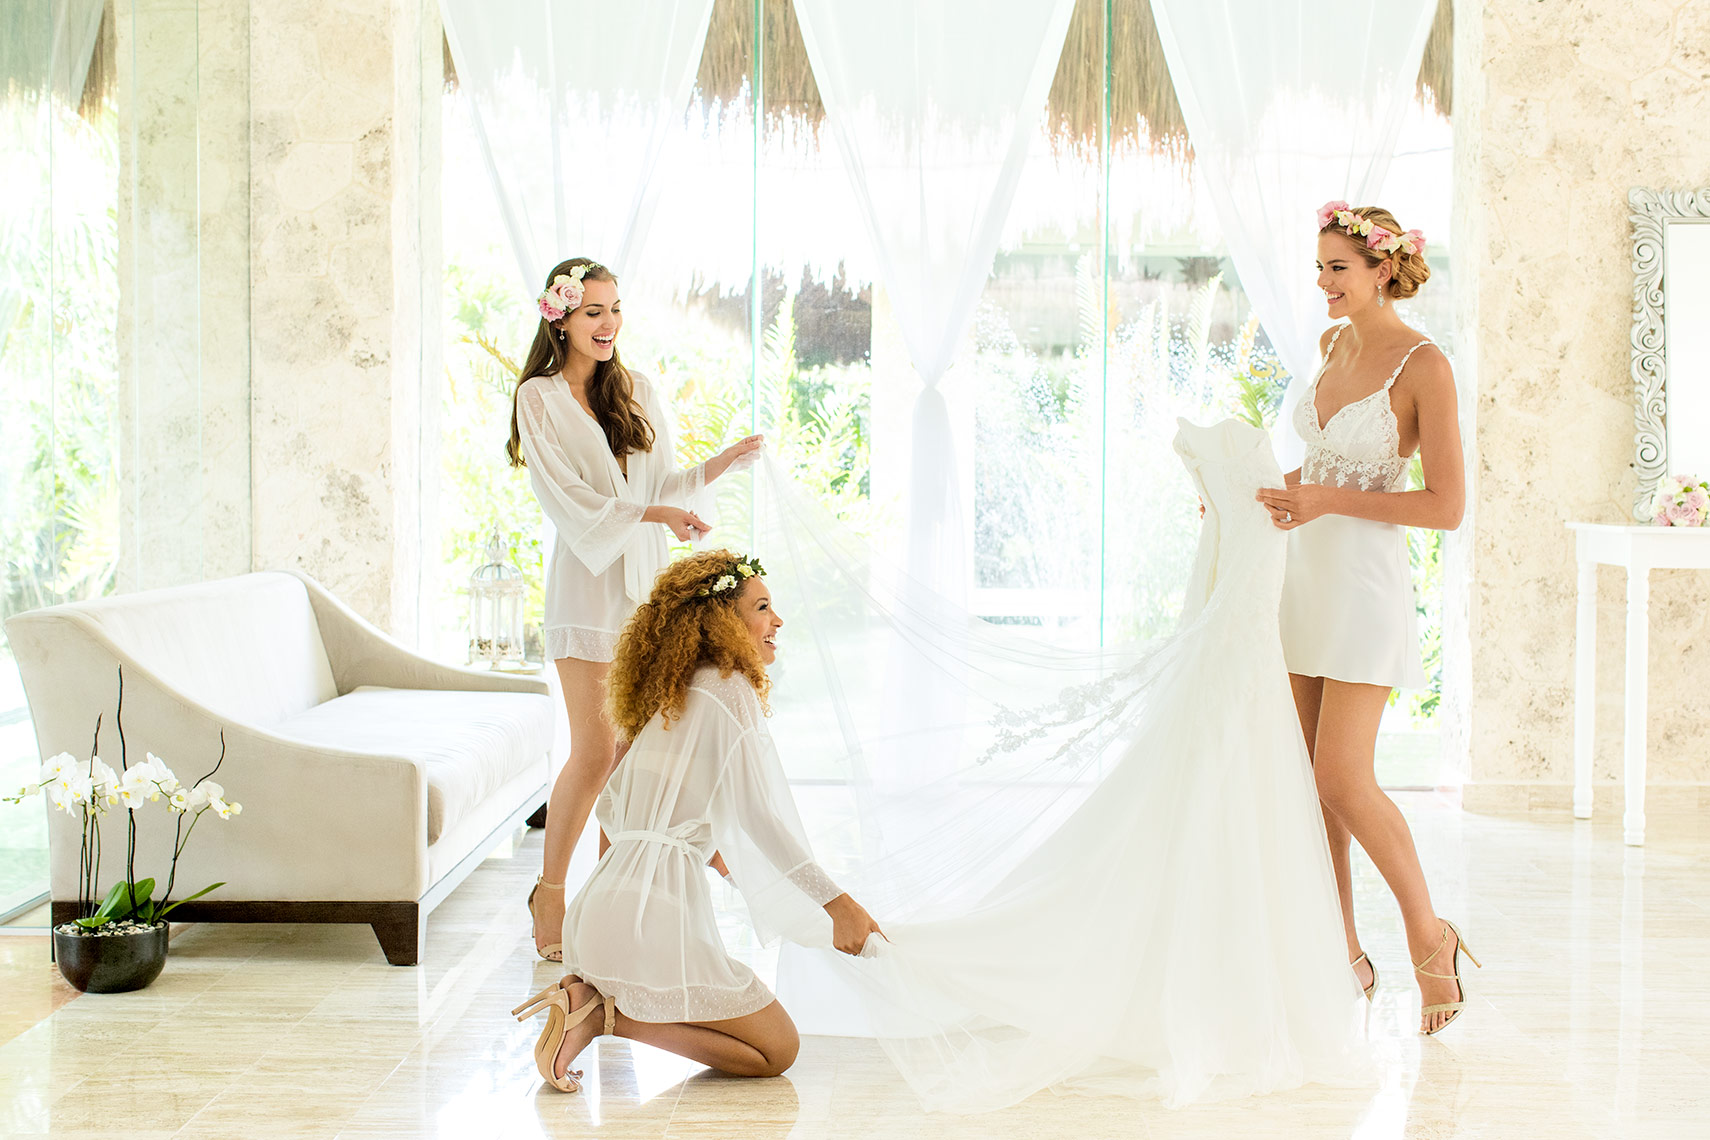 Wedding-GettingReady-PaladiumMX-4332-1COLORFLATWEB.jpg